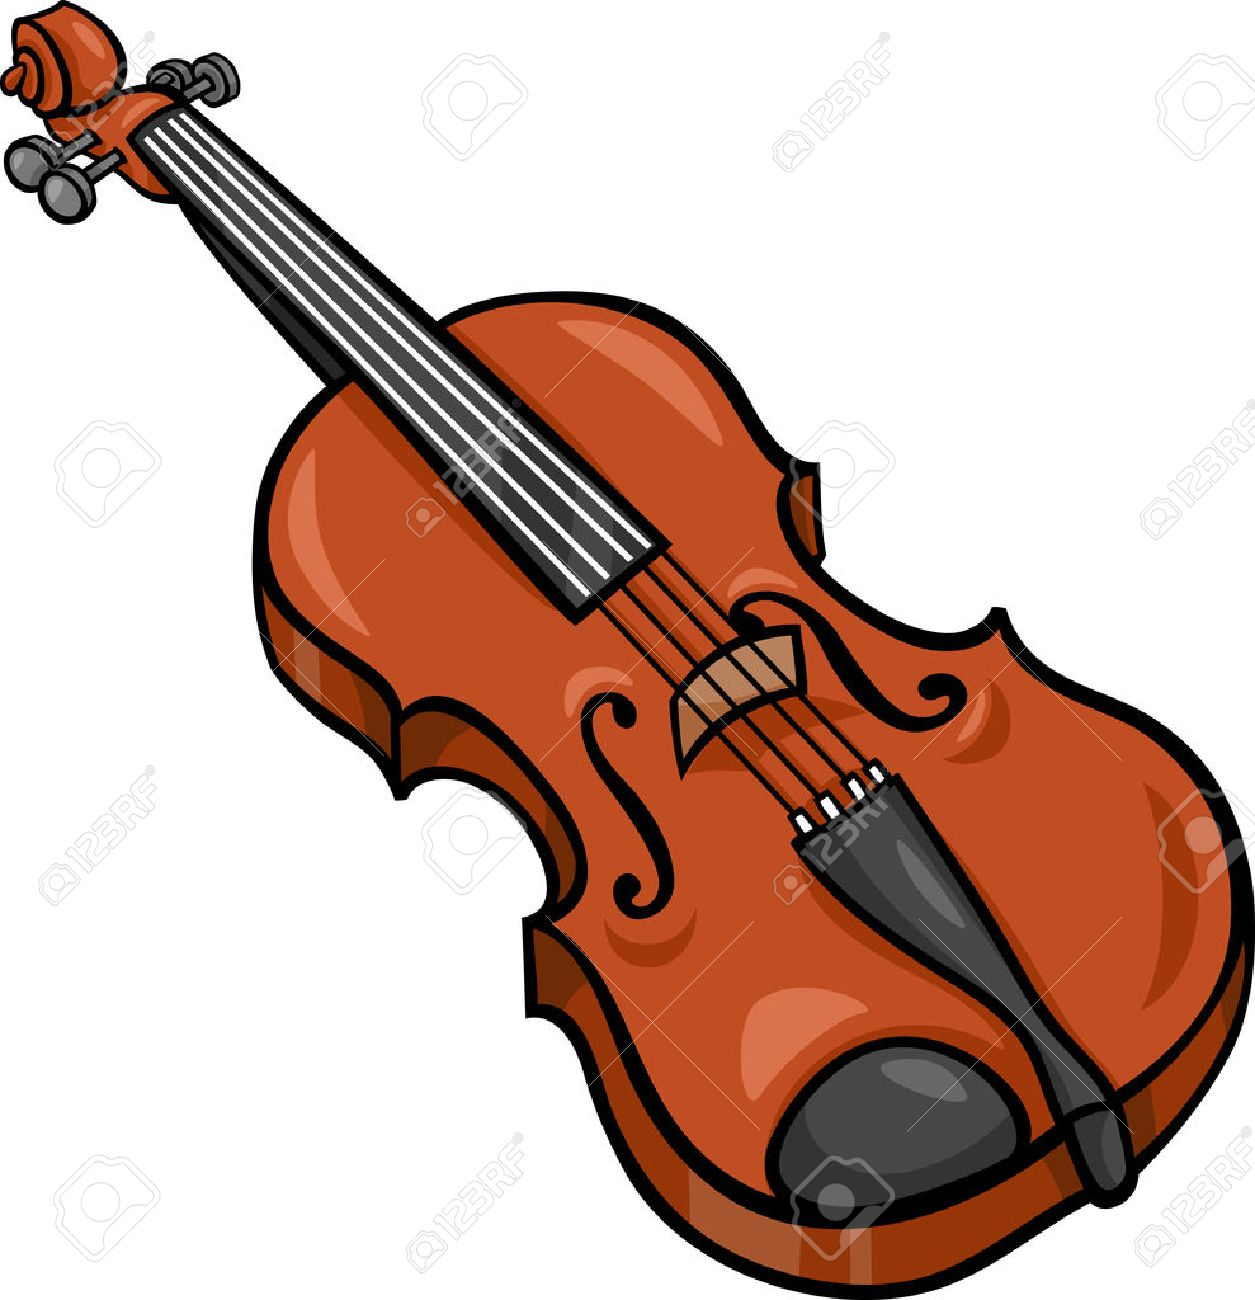 14 312 violin stock illustrations cliparts and royalty free violin rh 123rf com clip art violin bow clipart black and white violin